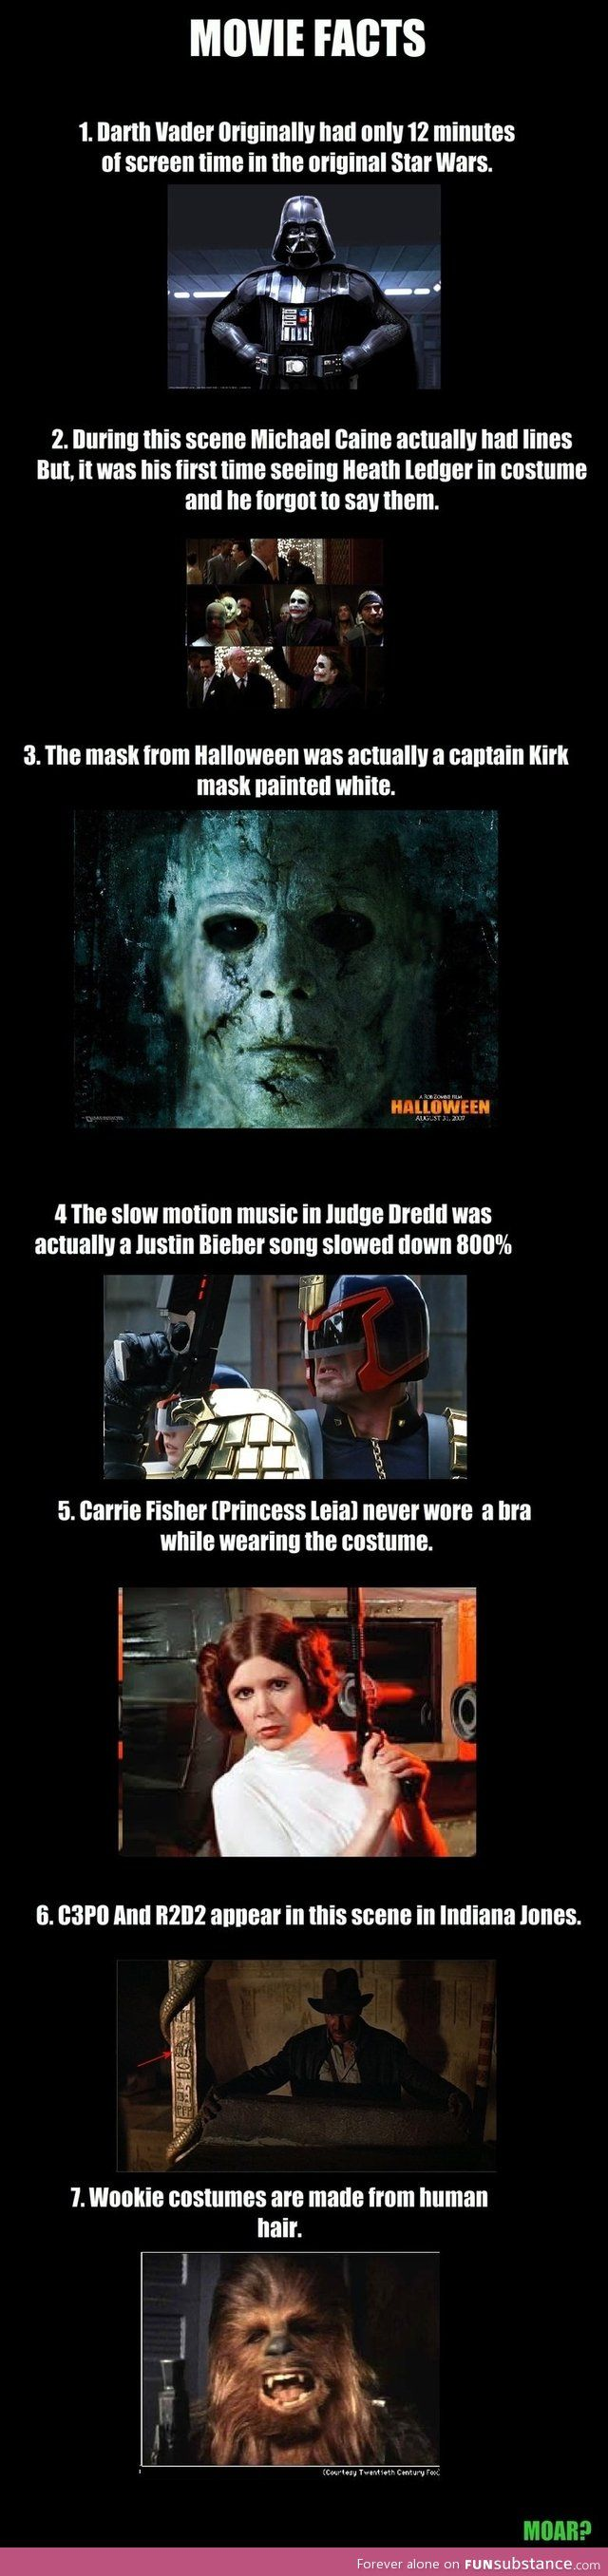 Best 25+ Judge dred ideas on Pinterest | Judge dredd comic, Judge ...